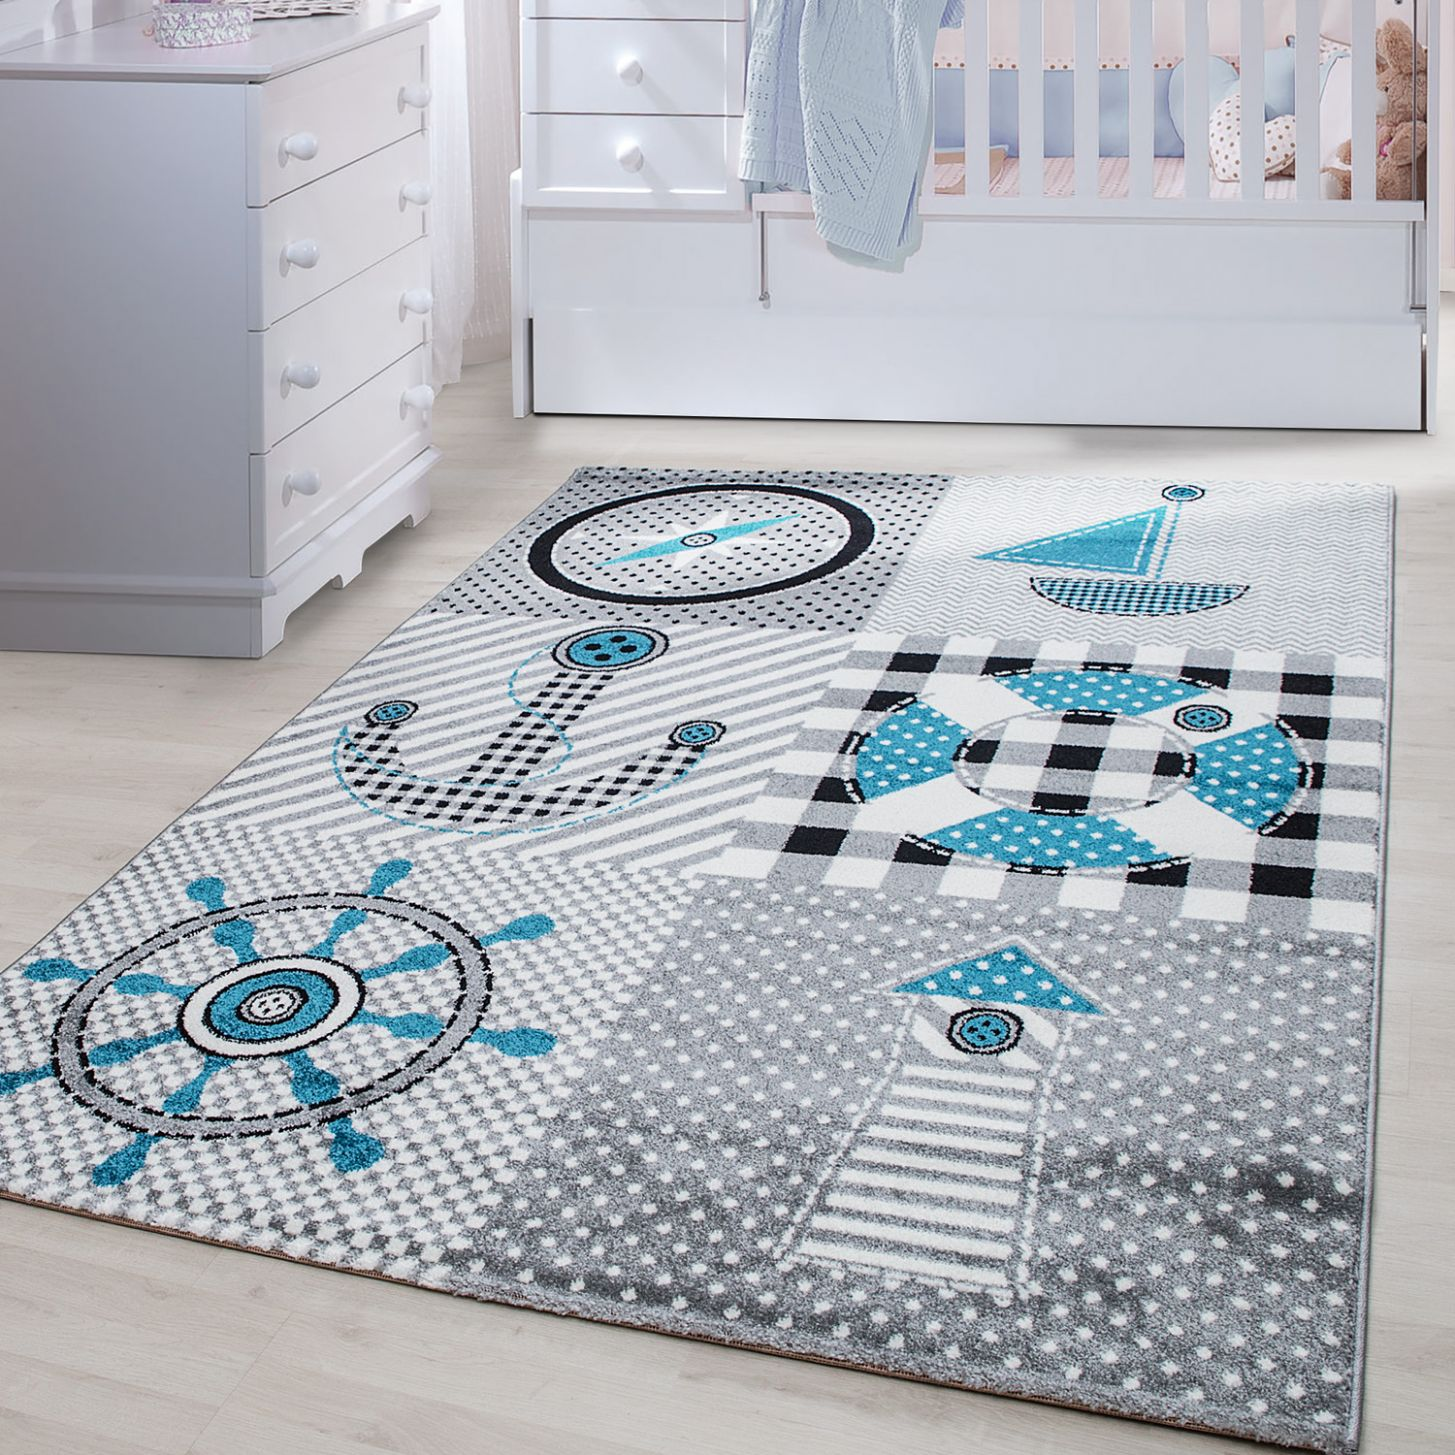 TEPPIUM Kids Play Mat rug Baby Room Colourful Pirate Carpet Grey carpet |  Ceres Webshop